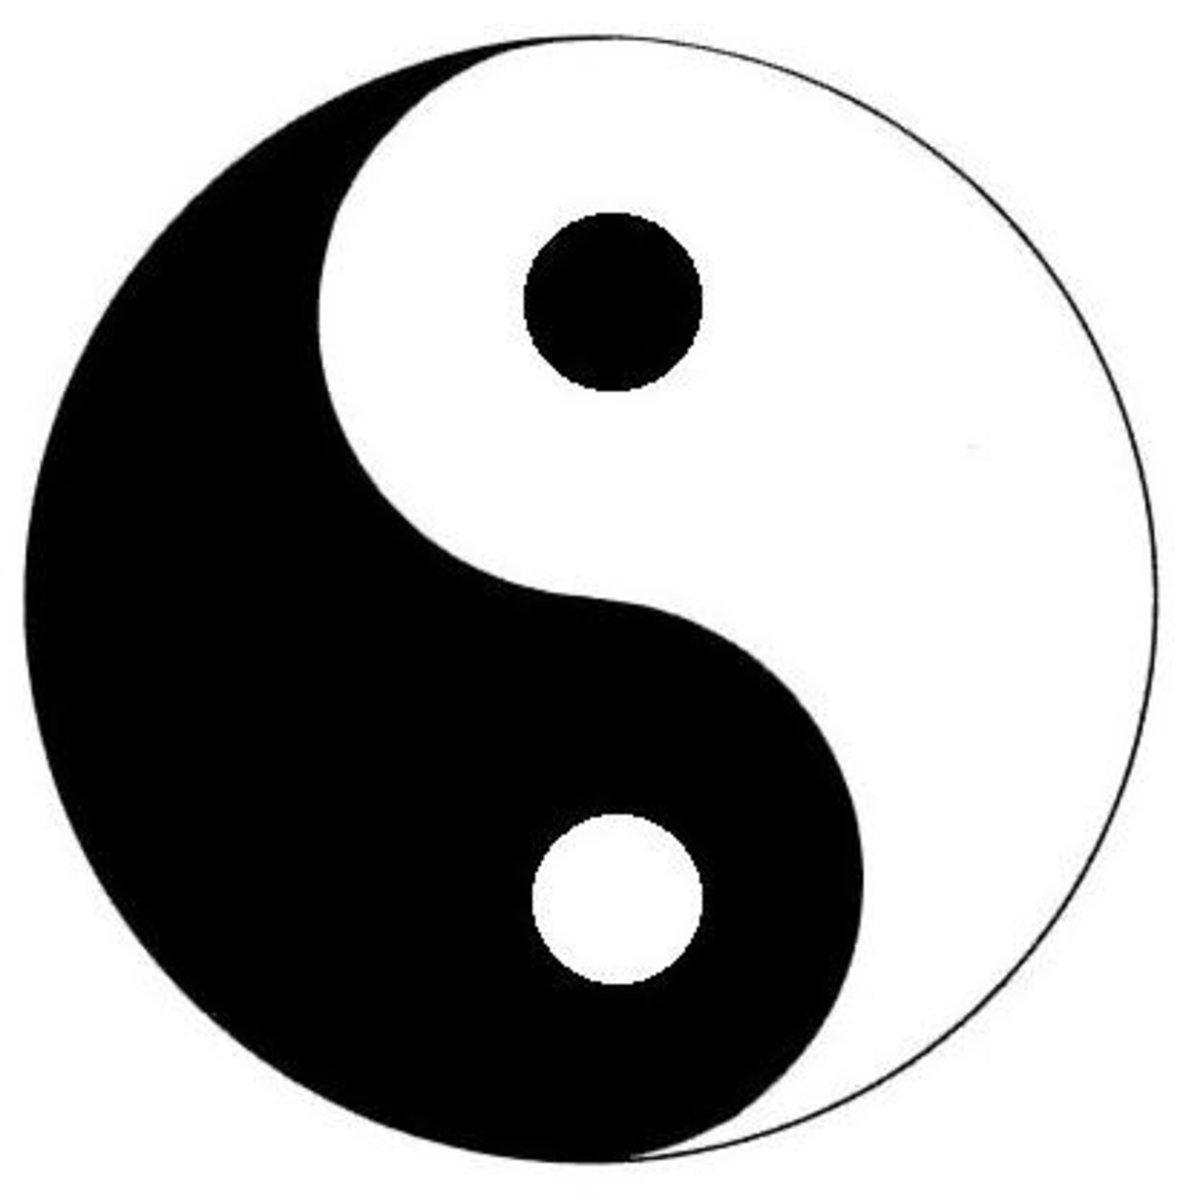 Yin Yang Symbol Meaning - Chinese Philosophy